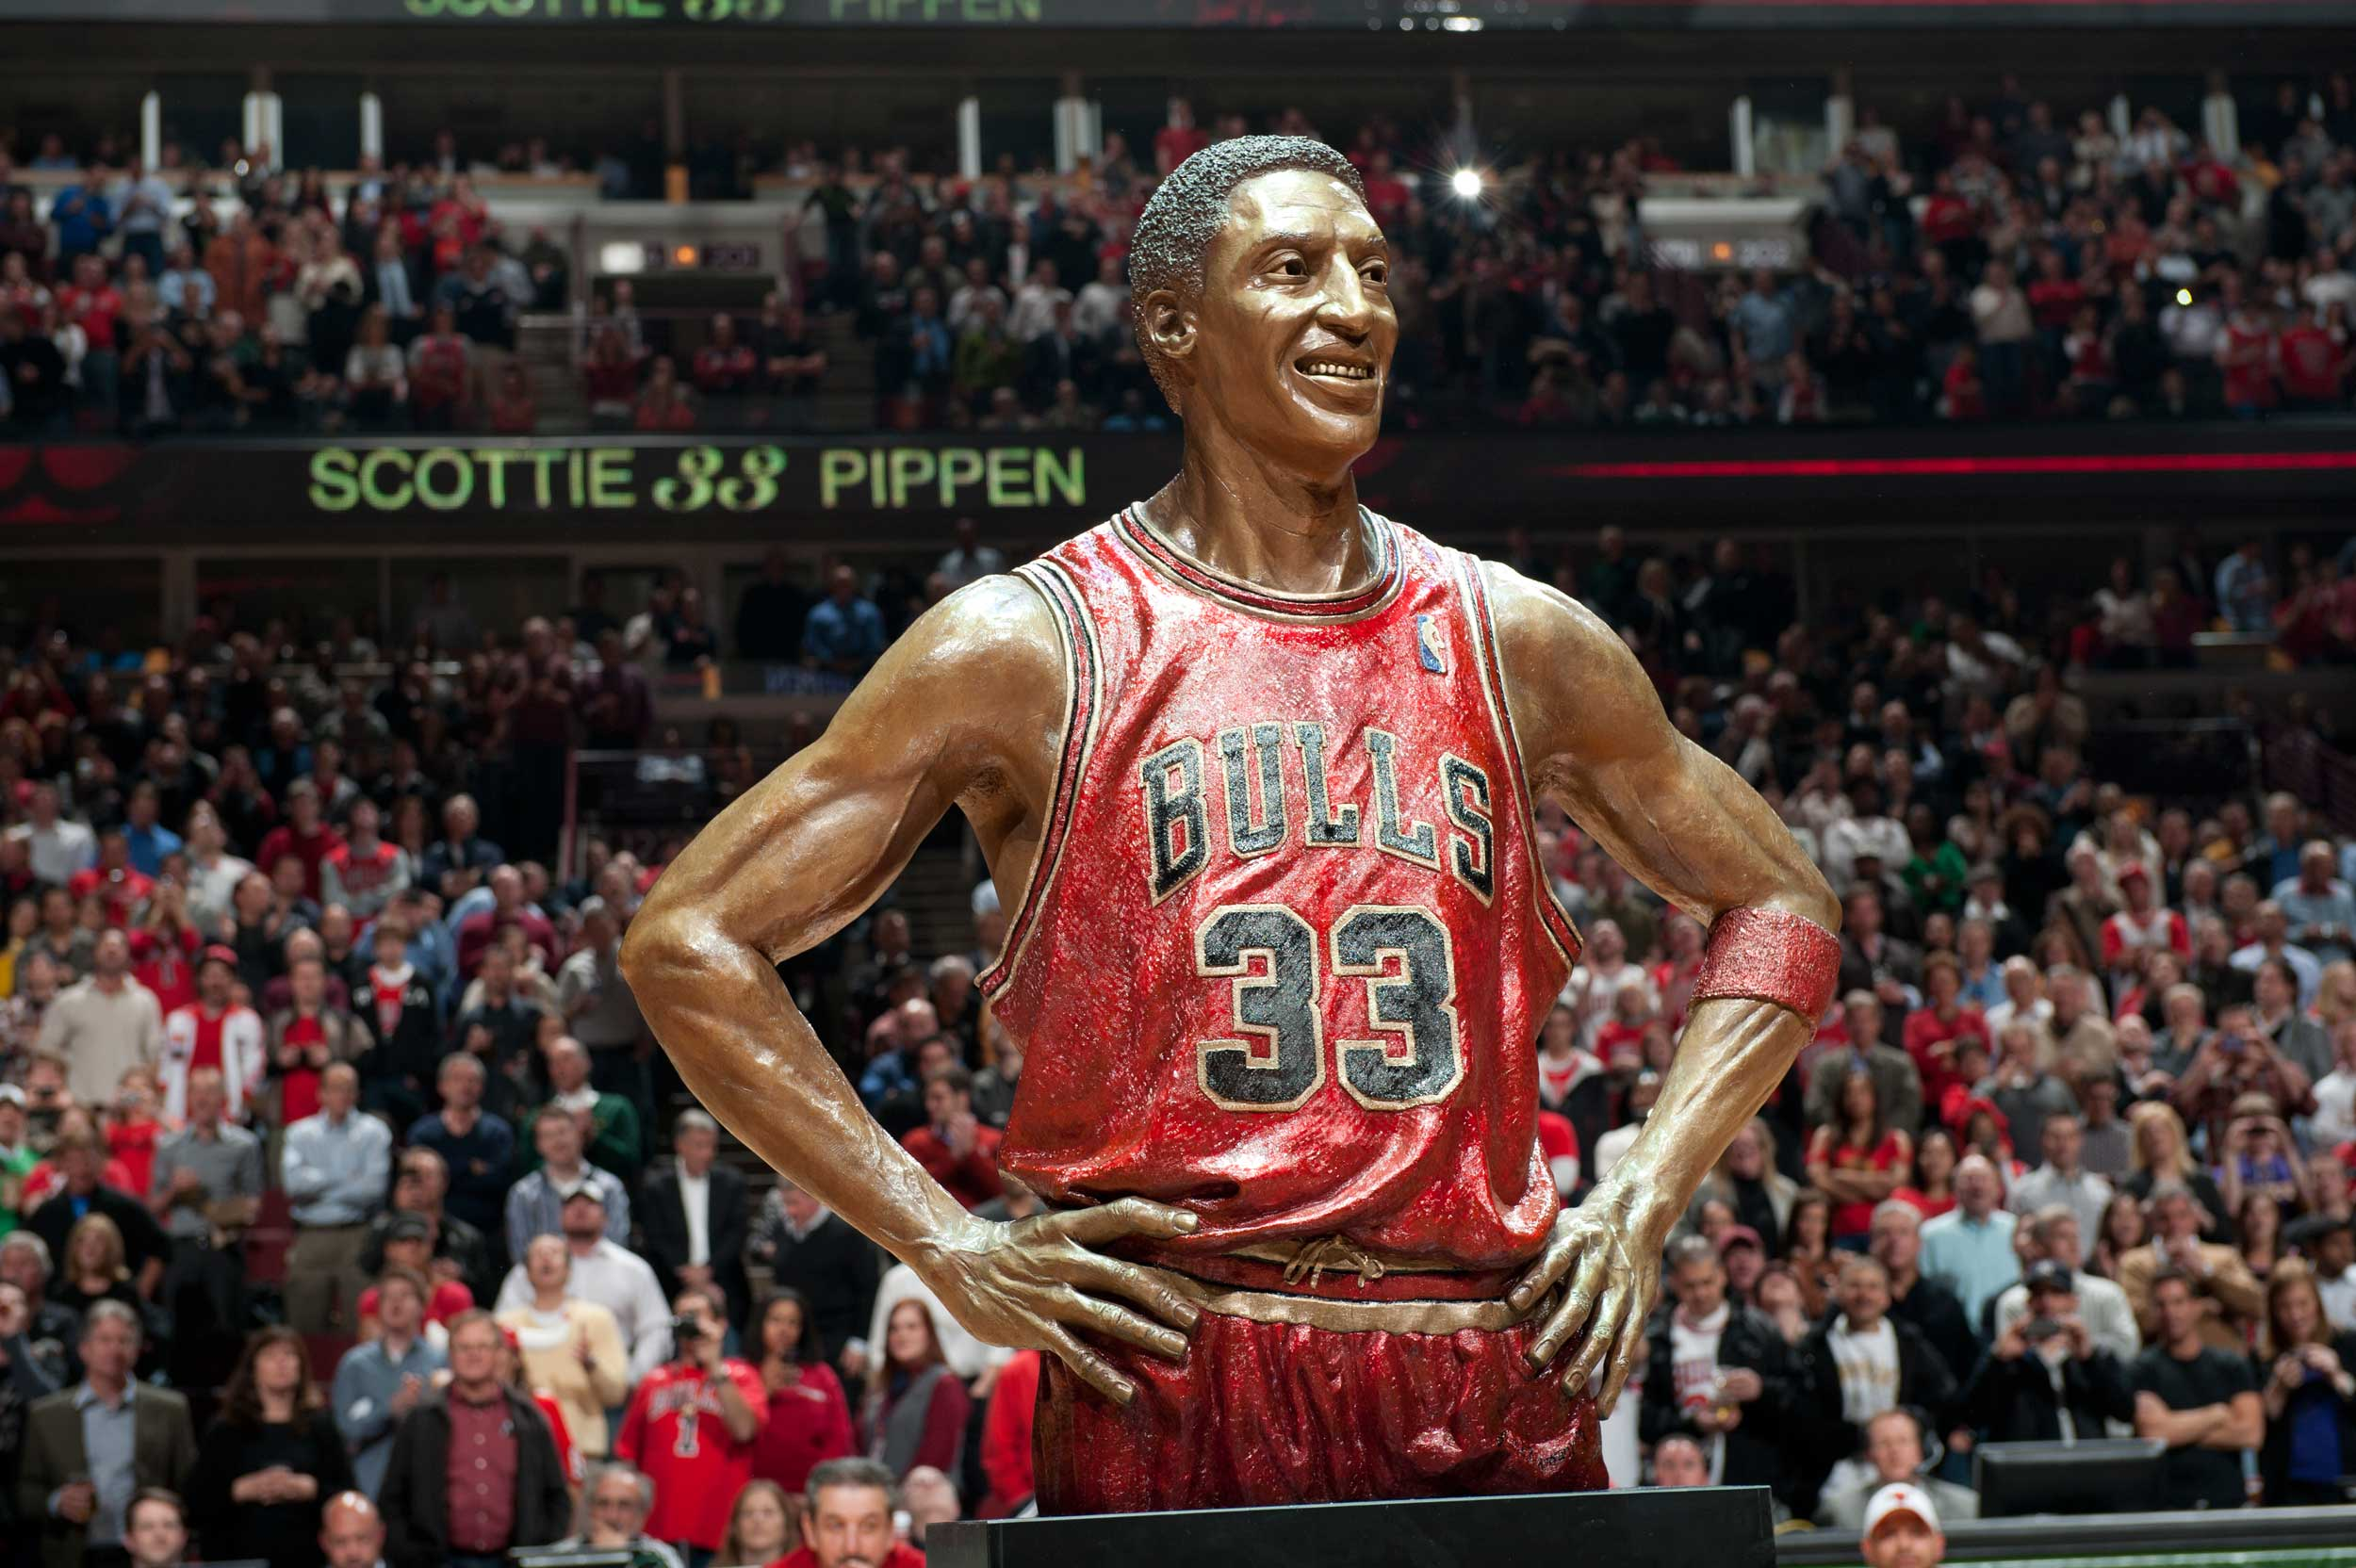 Scottie Pippen Statue